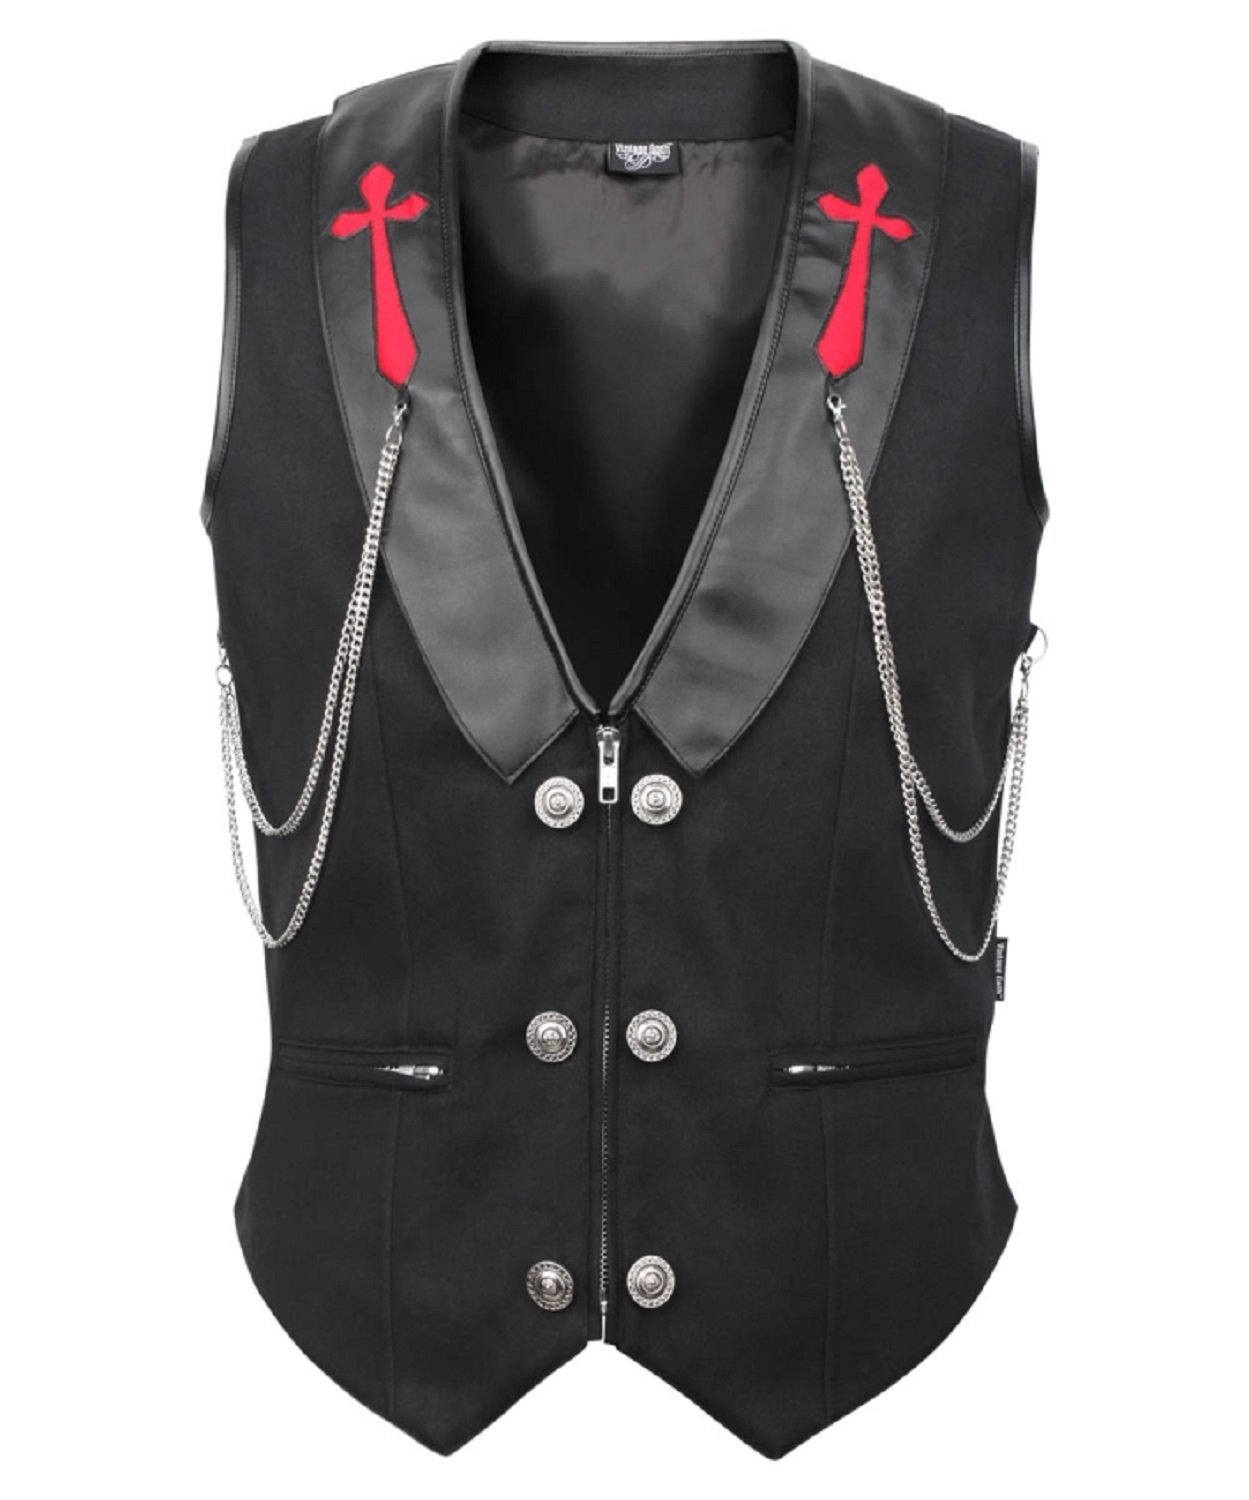 Men's Steampunk Cotton Gothic Waistcoat Vest with Hanging Chain (L)